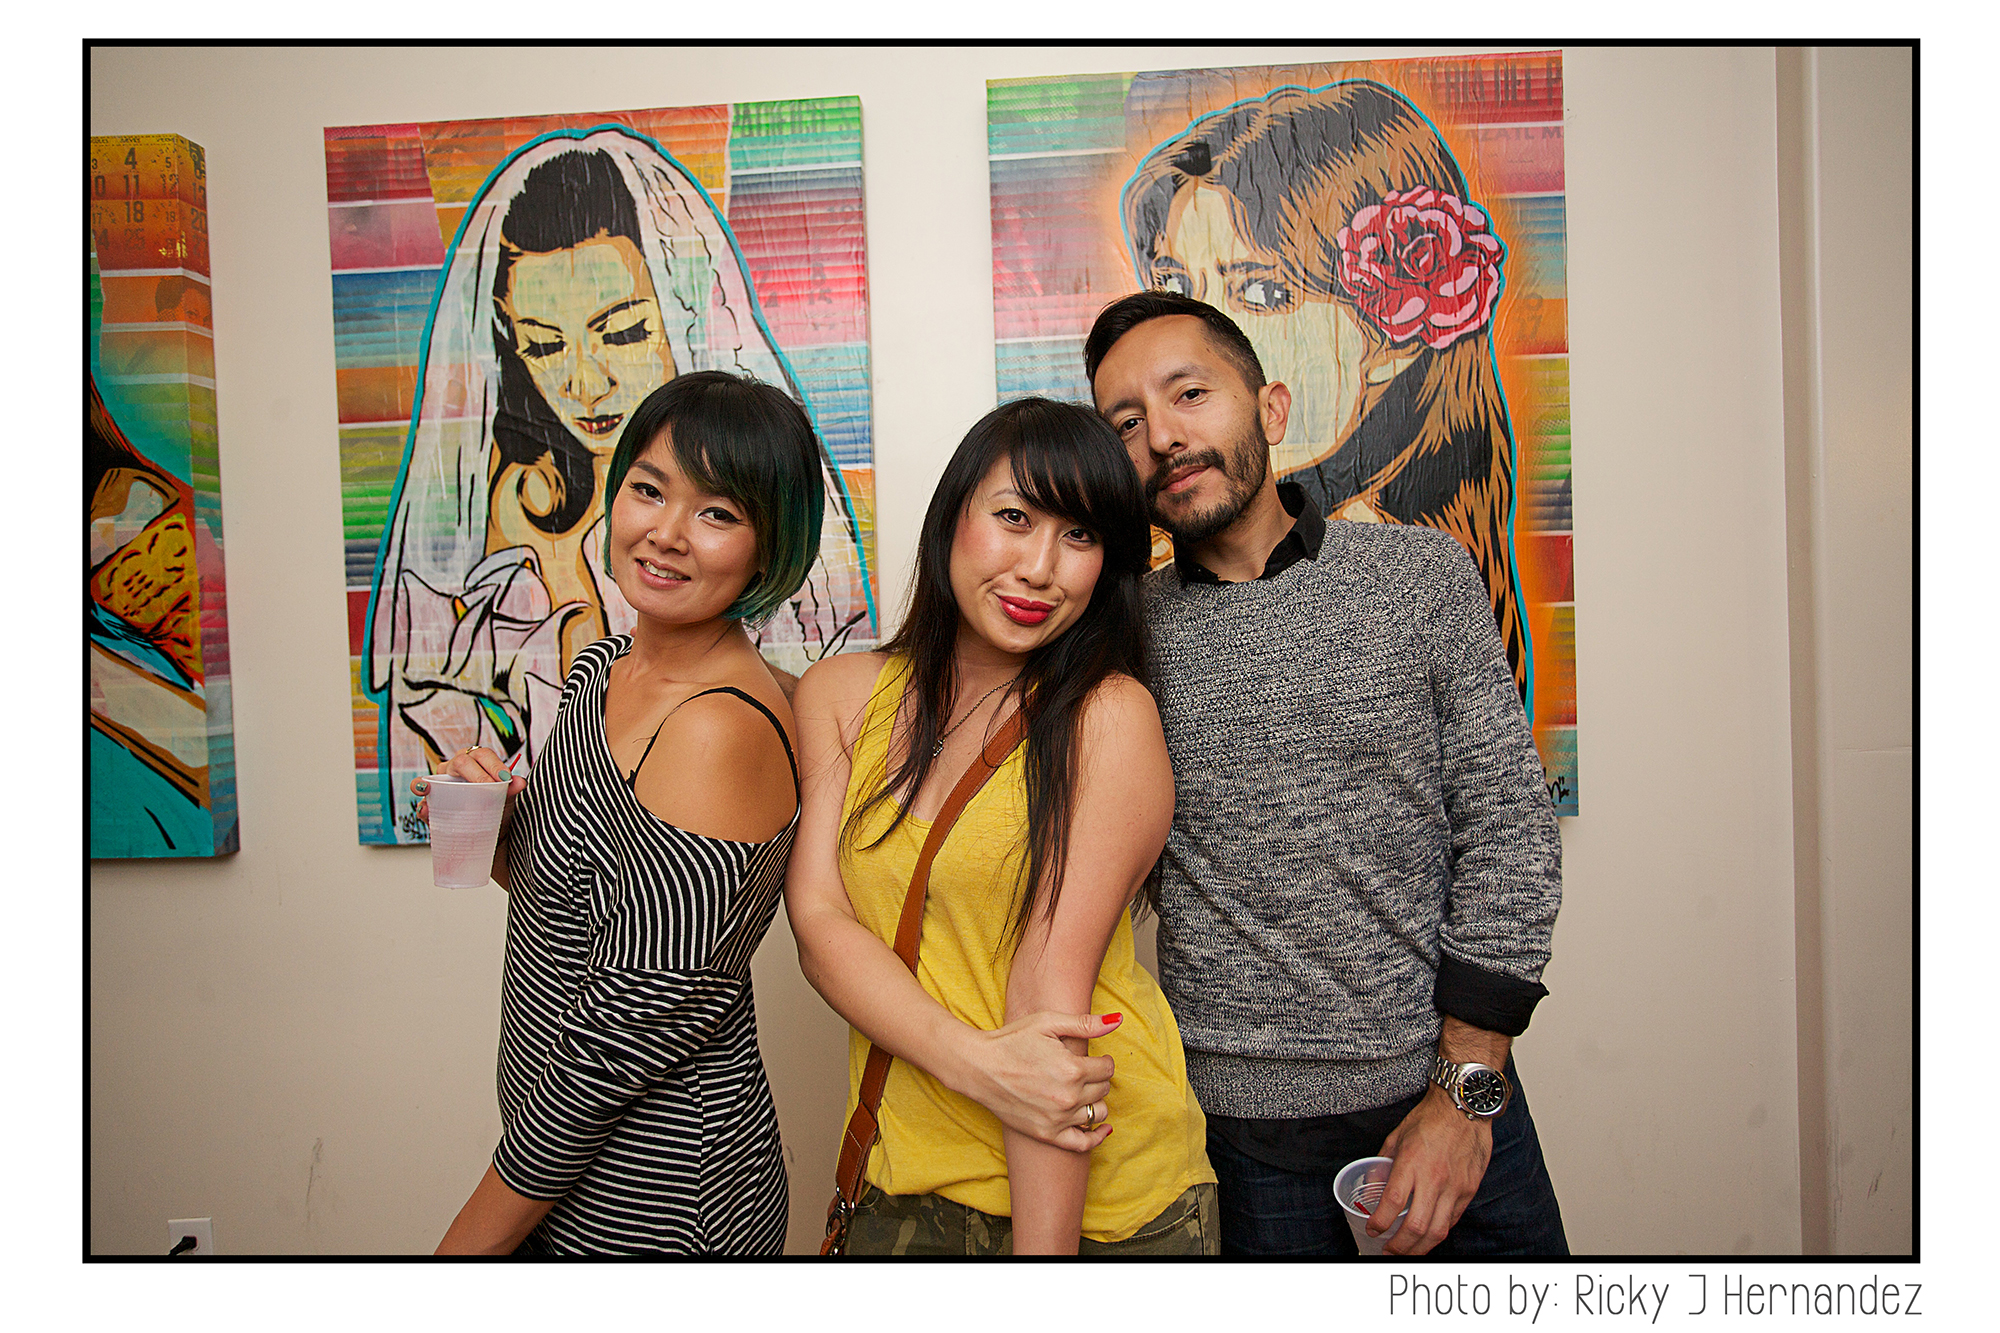 Ricky-J-Hernandez-photography-Oh-poop-I-have-Lupus-art-show-for-Delia-sweet-tooth-in-Privy-studio-Los-Angeles-CA-045